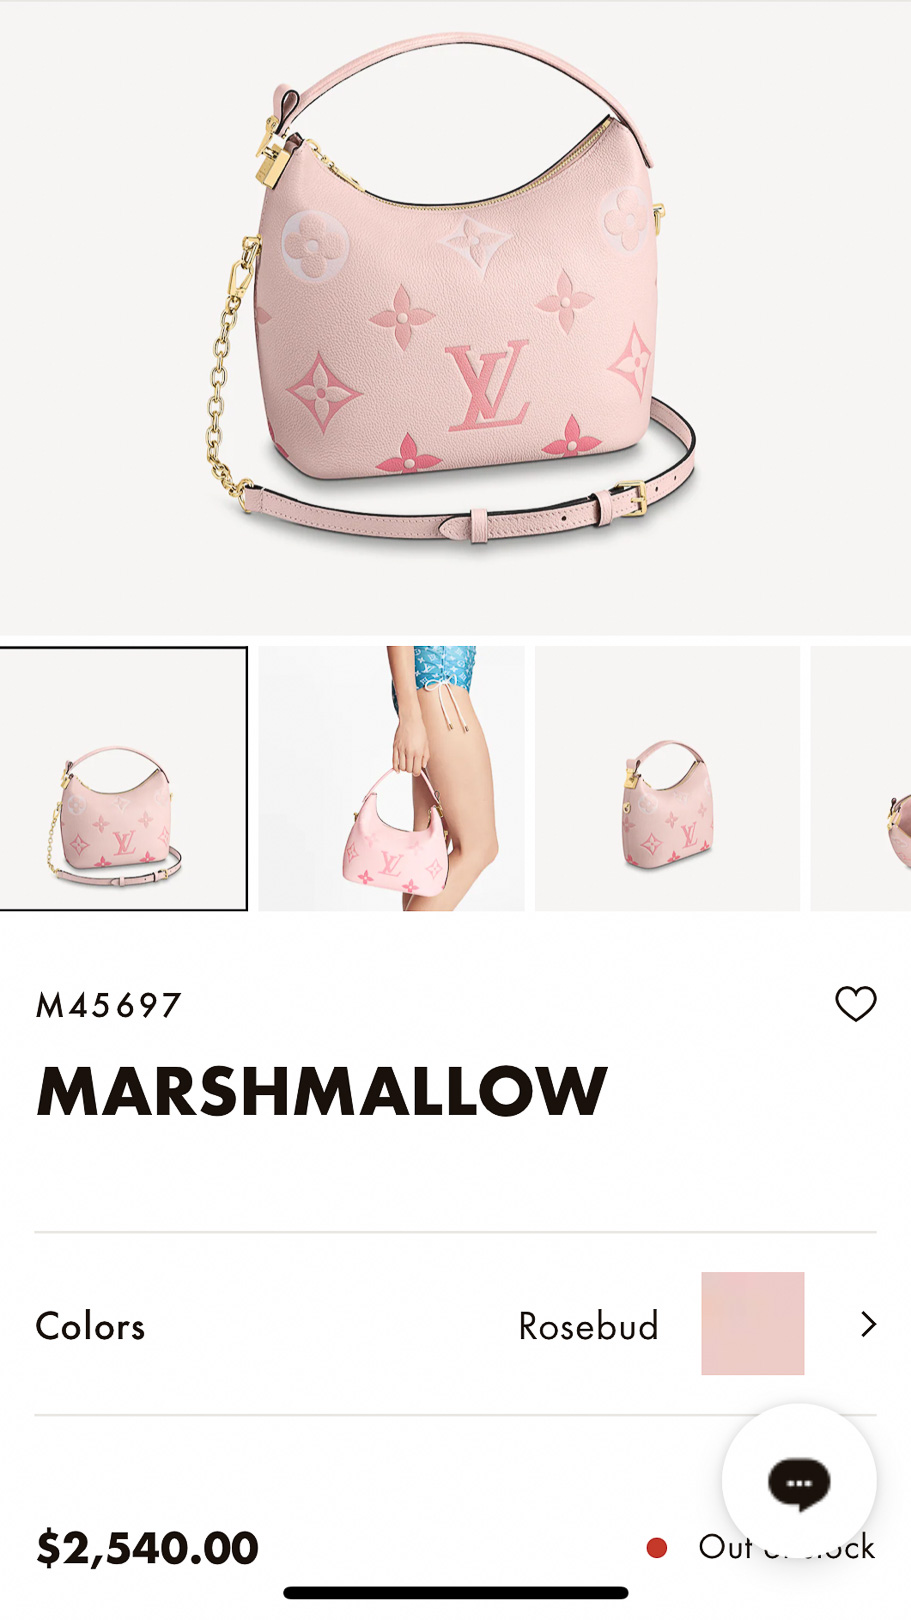 Louis Vuitton By The Pool Marshmallow Online Price